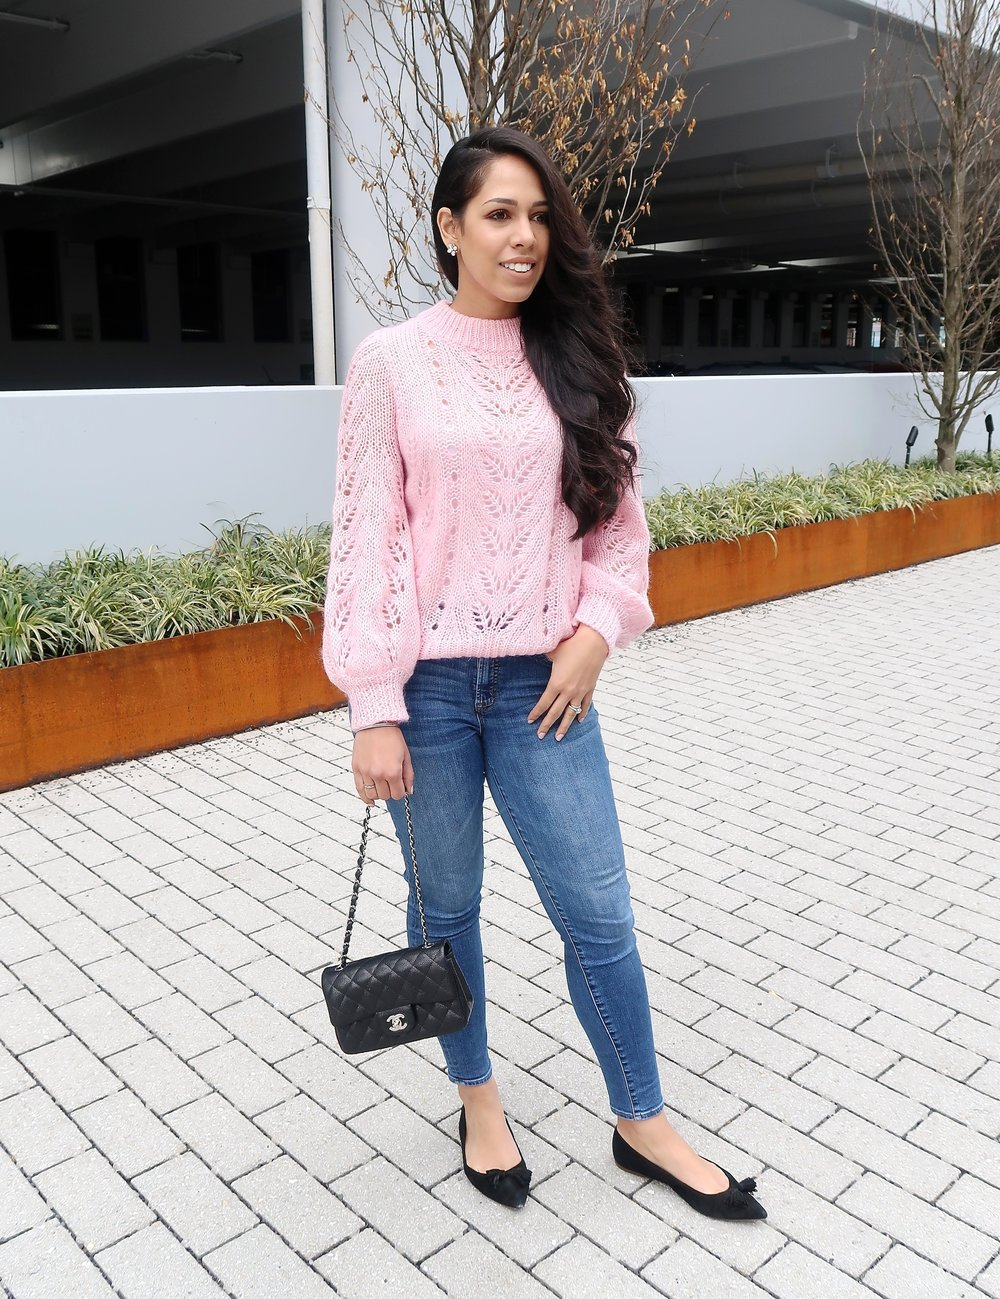 philadelphia-fashion-blogger-brunette-indian-chanel.jpg